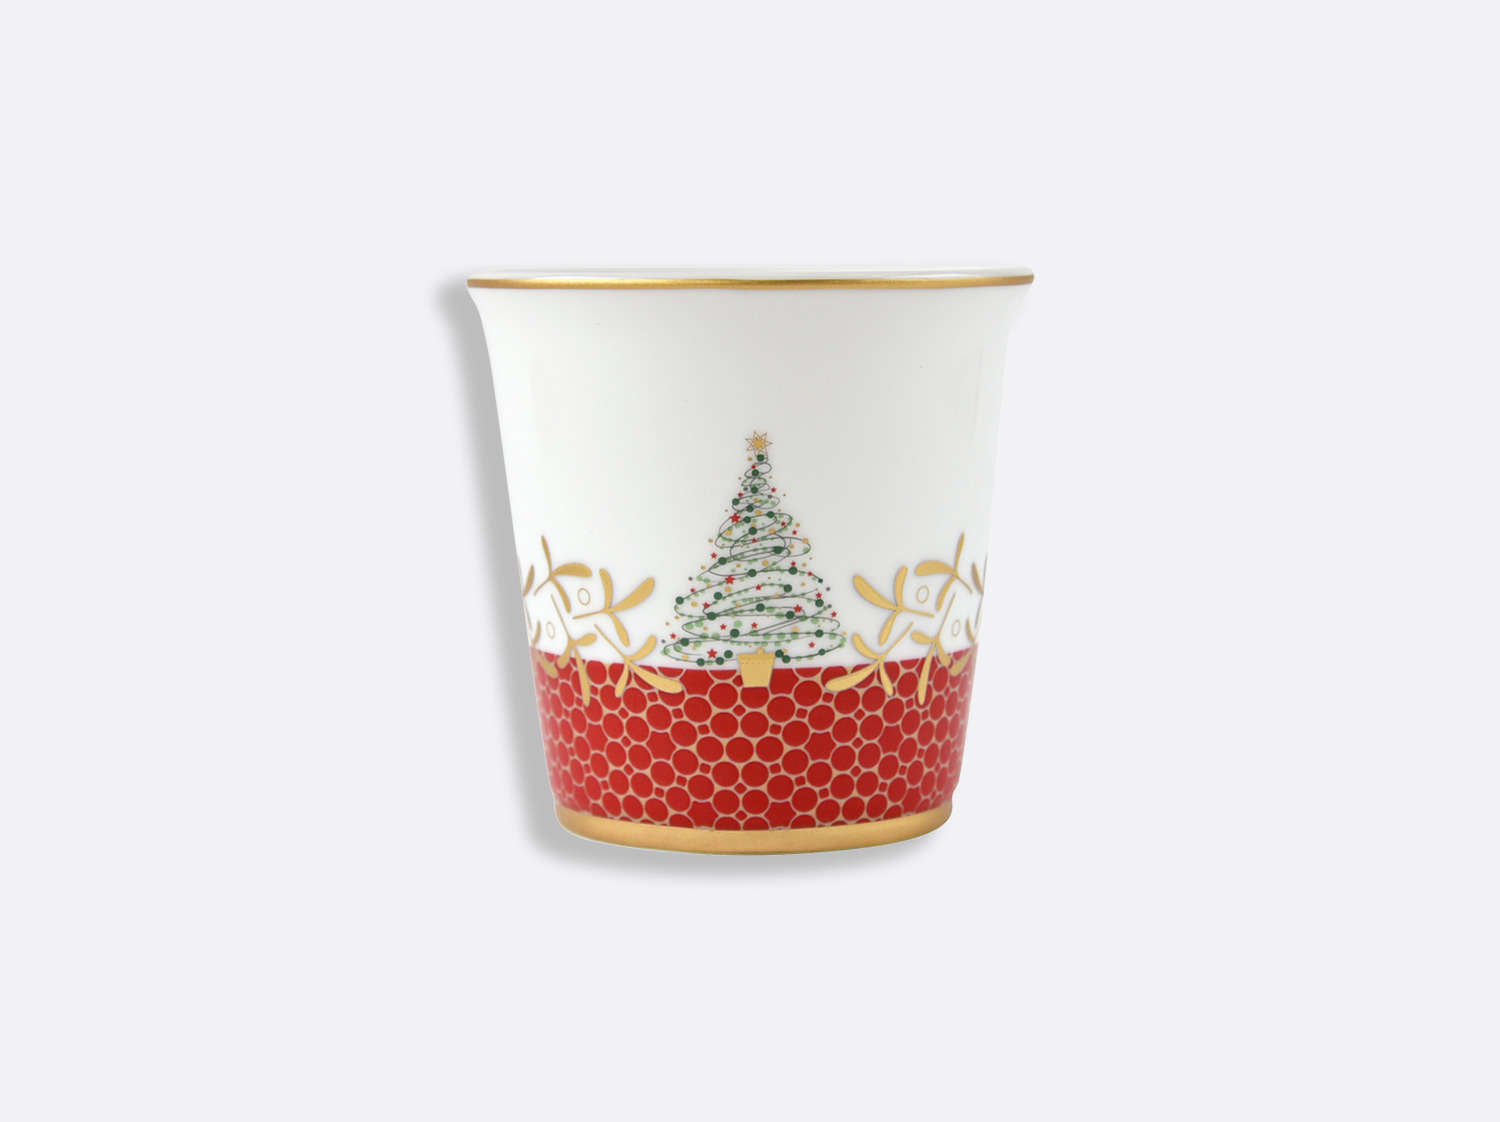 Pot 9 cm + bougie parfumée 200g en porcelaine de la collection Noël Bernardaud